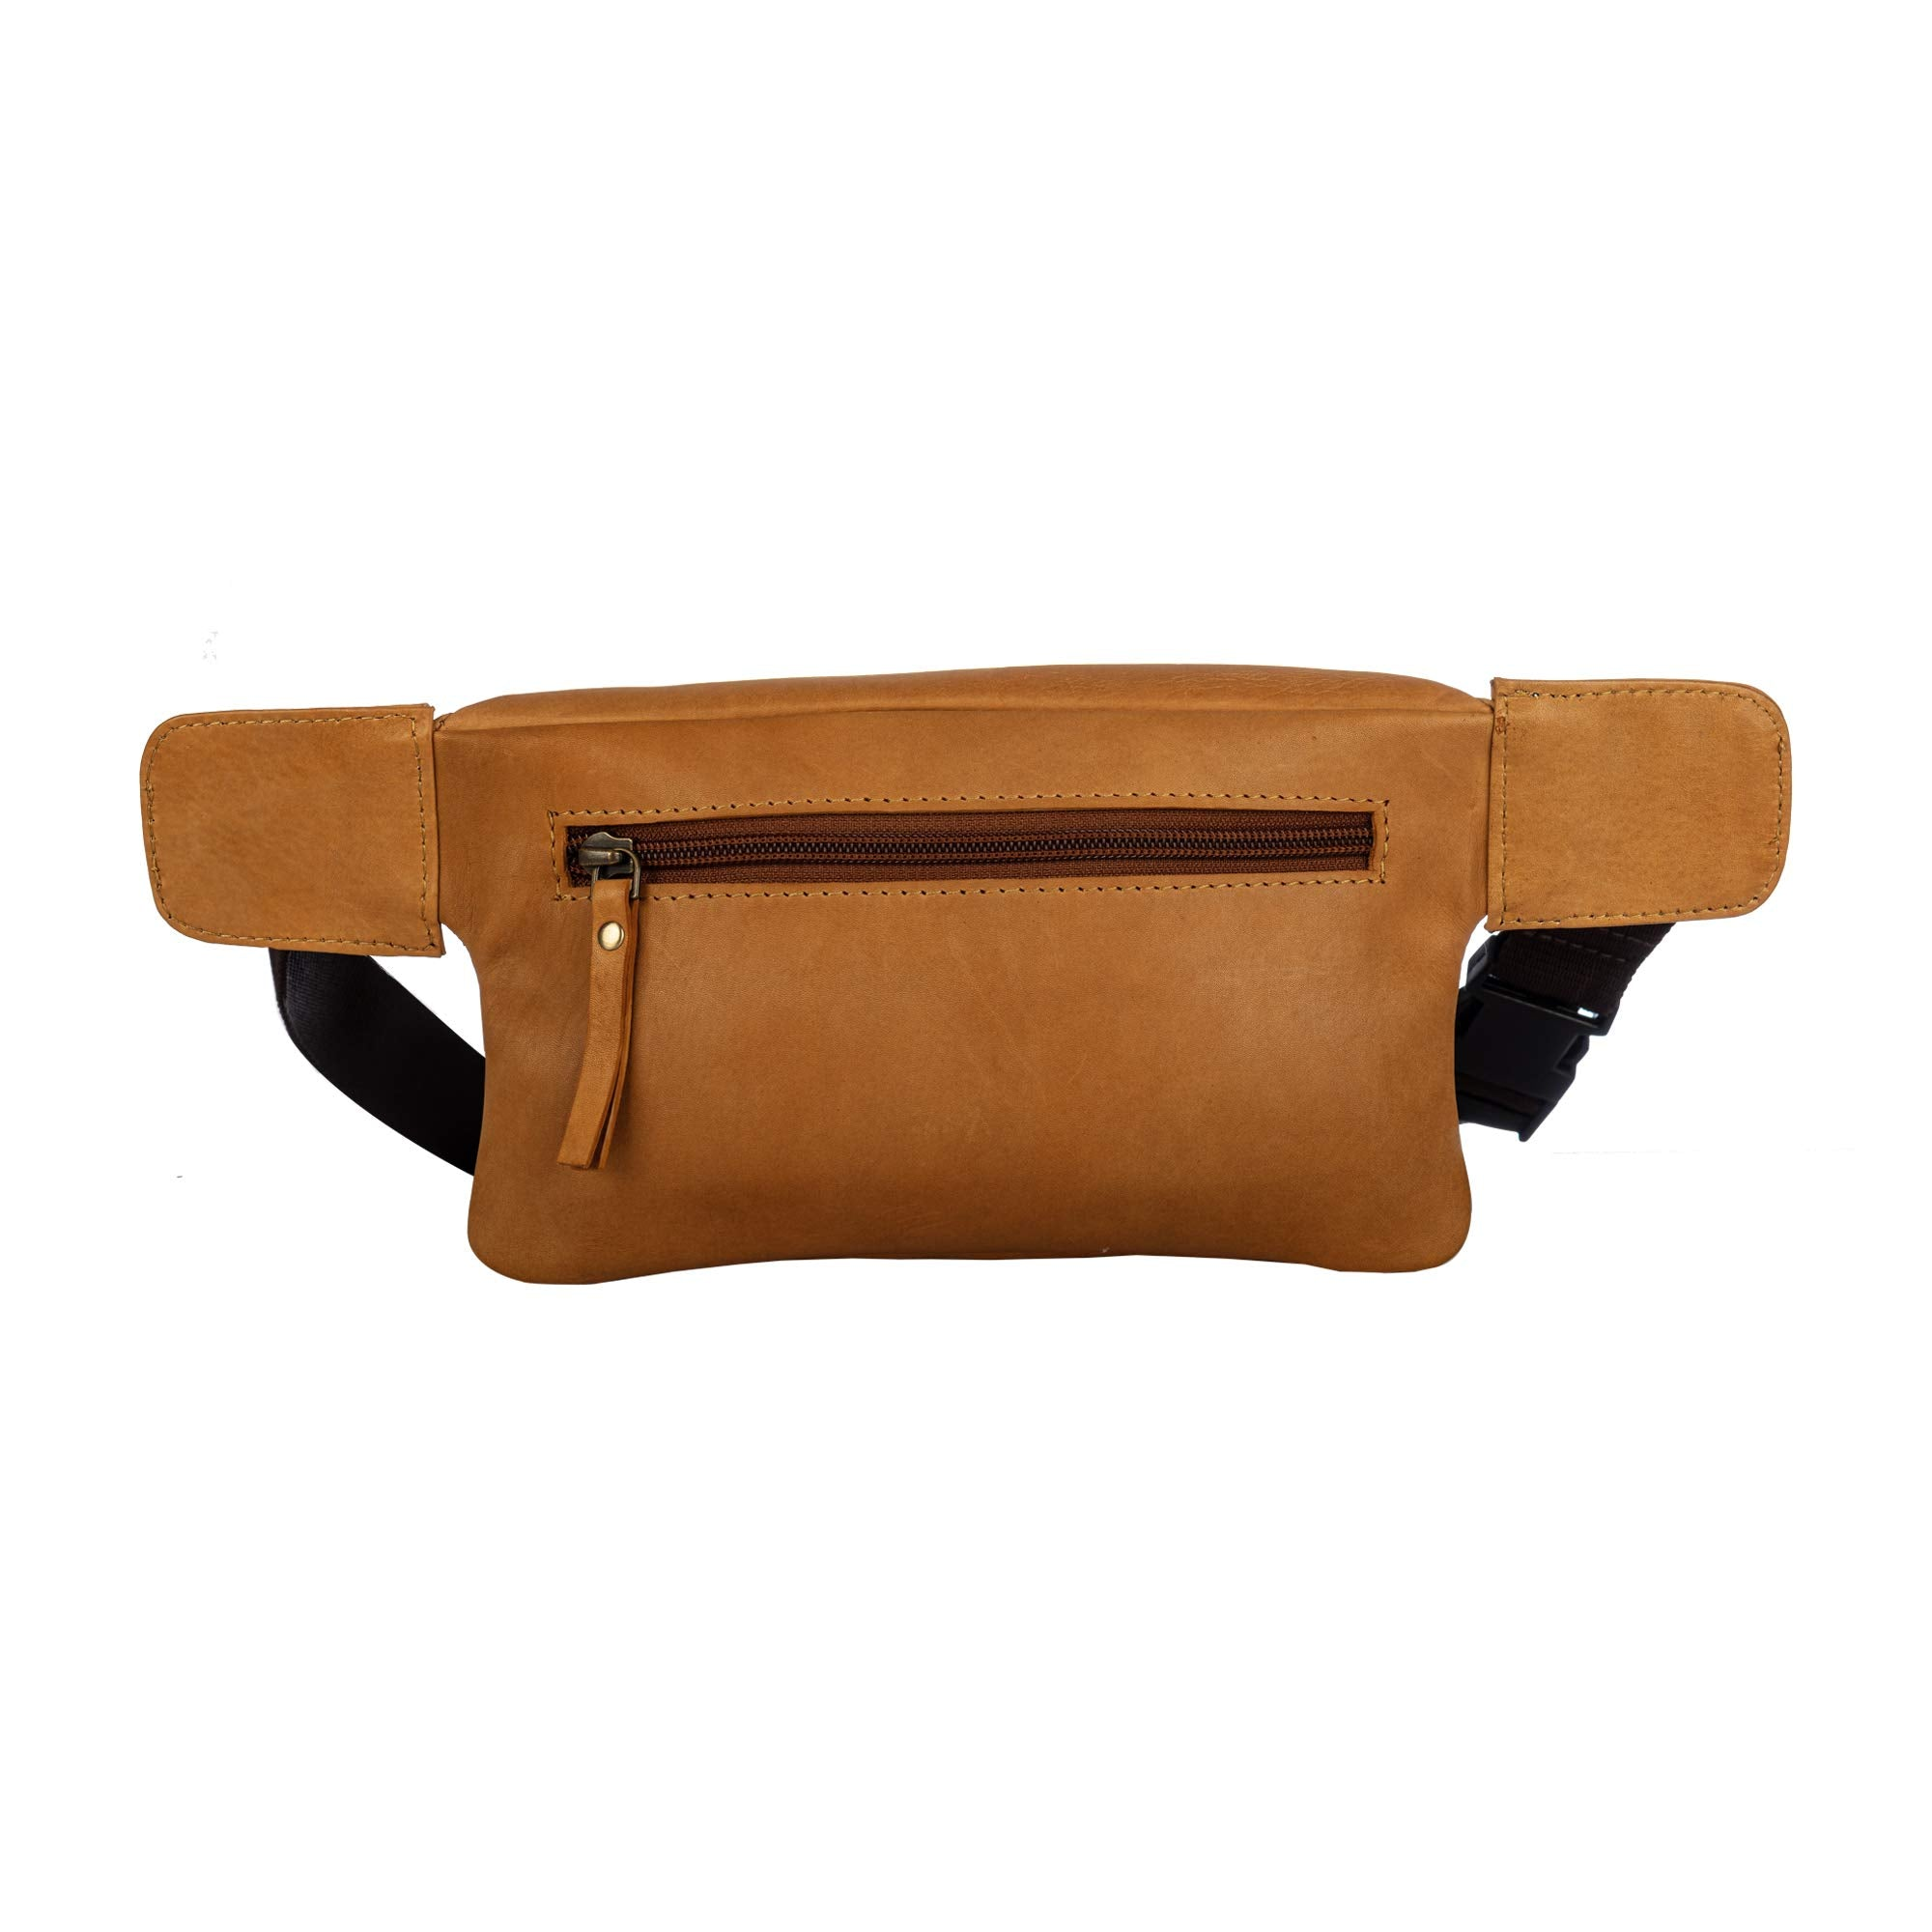 Finelaer Mustard Leather Fanny Waist Travel Hiking Pack Bag